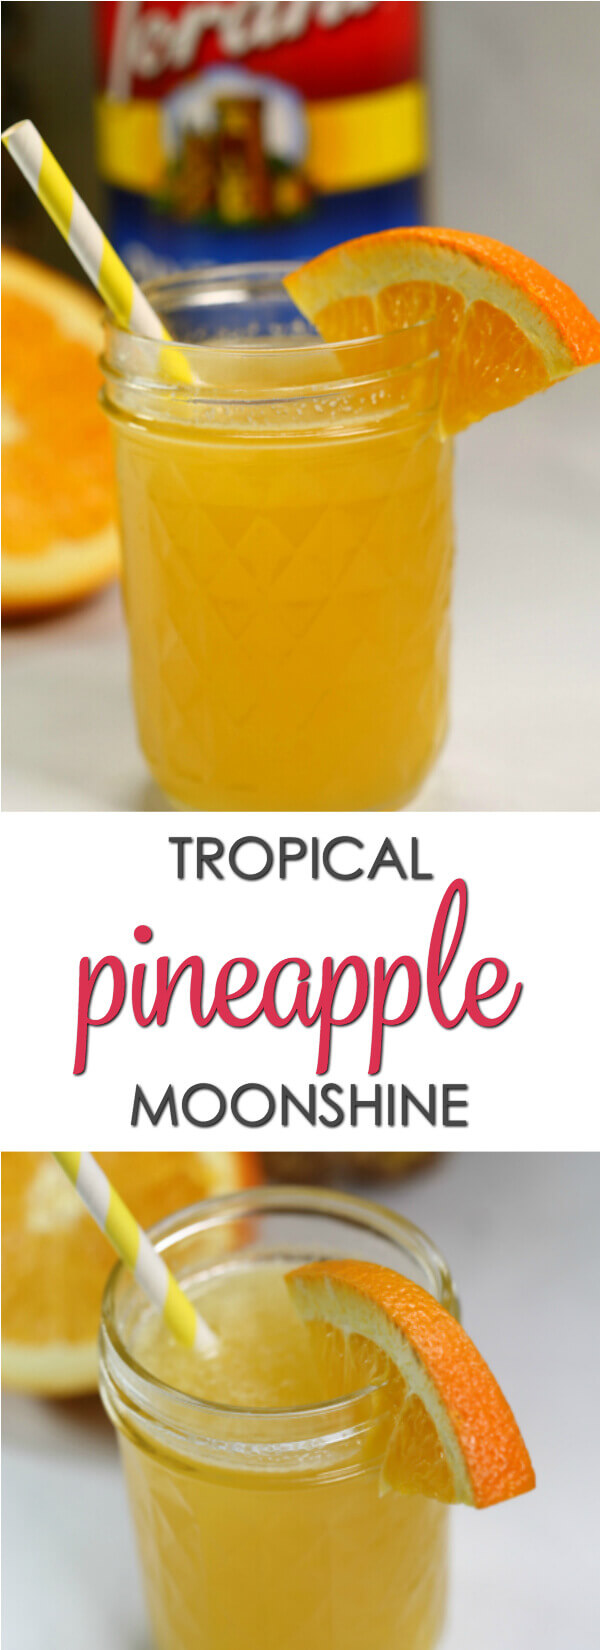 This Tropical Pineapple Moonshine Recipes Is Bursting With Coconut And Orange Flavors